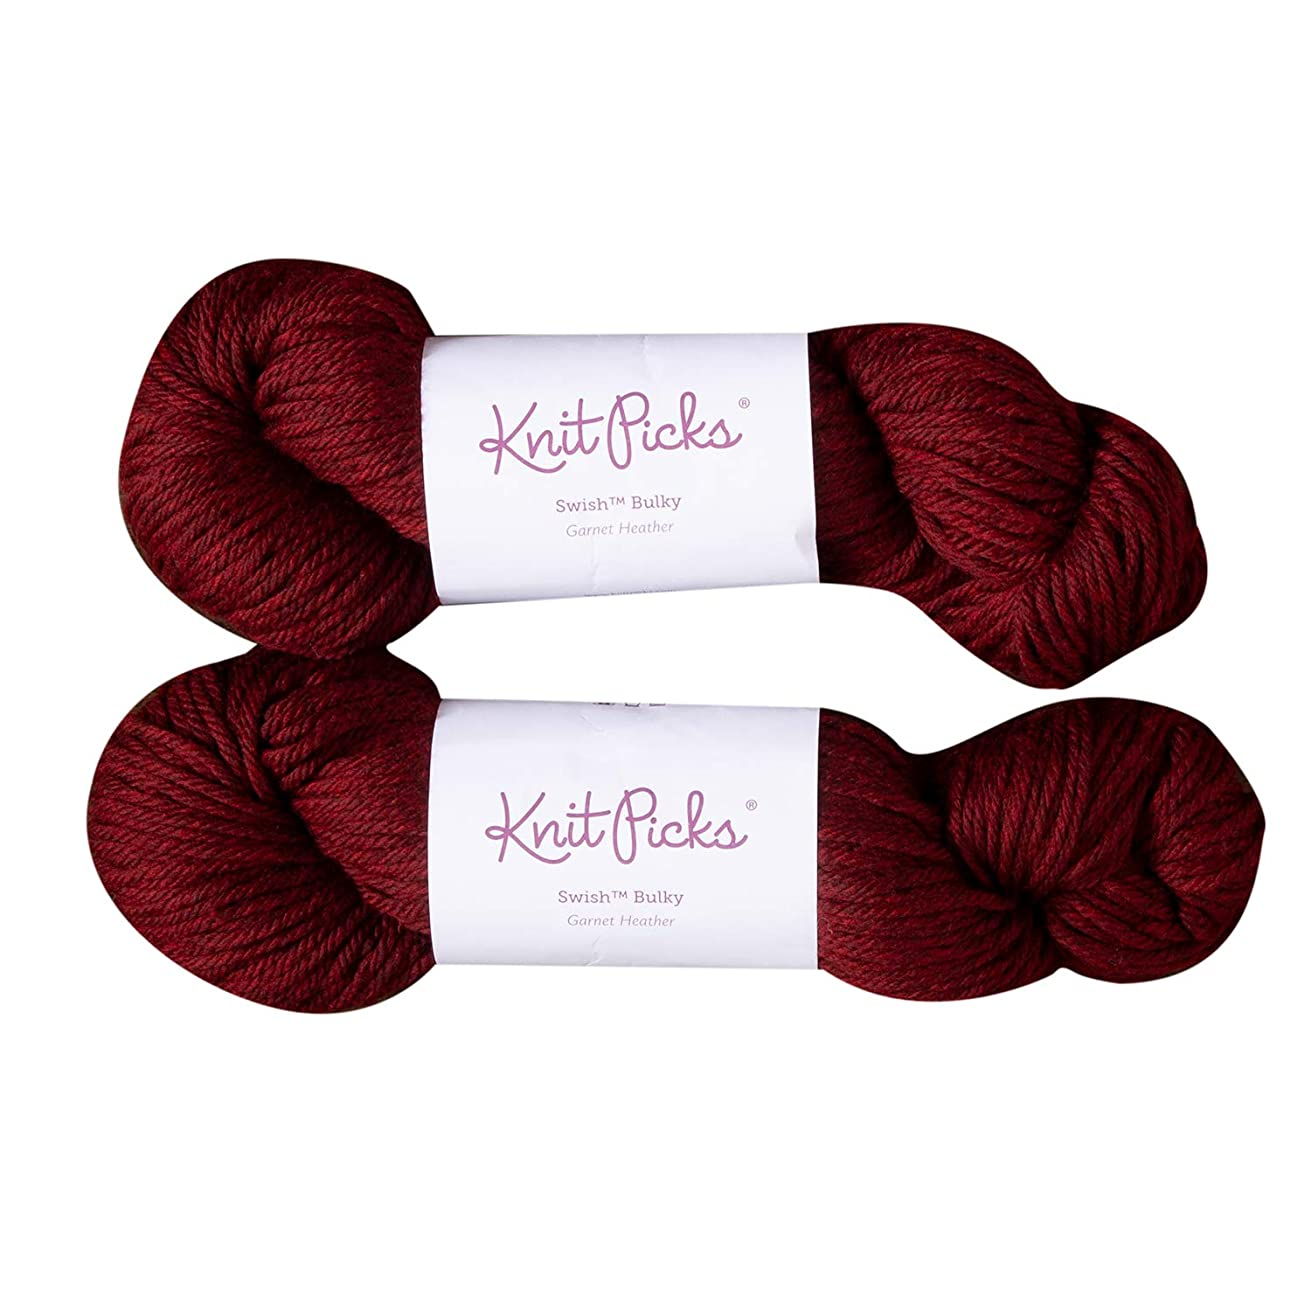 Knit Picks Swish Bulky Merino Wool Yarn - 2 Pack with Free Pattern (Garnet Heather)